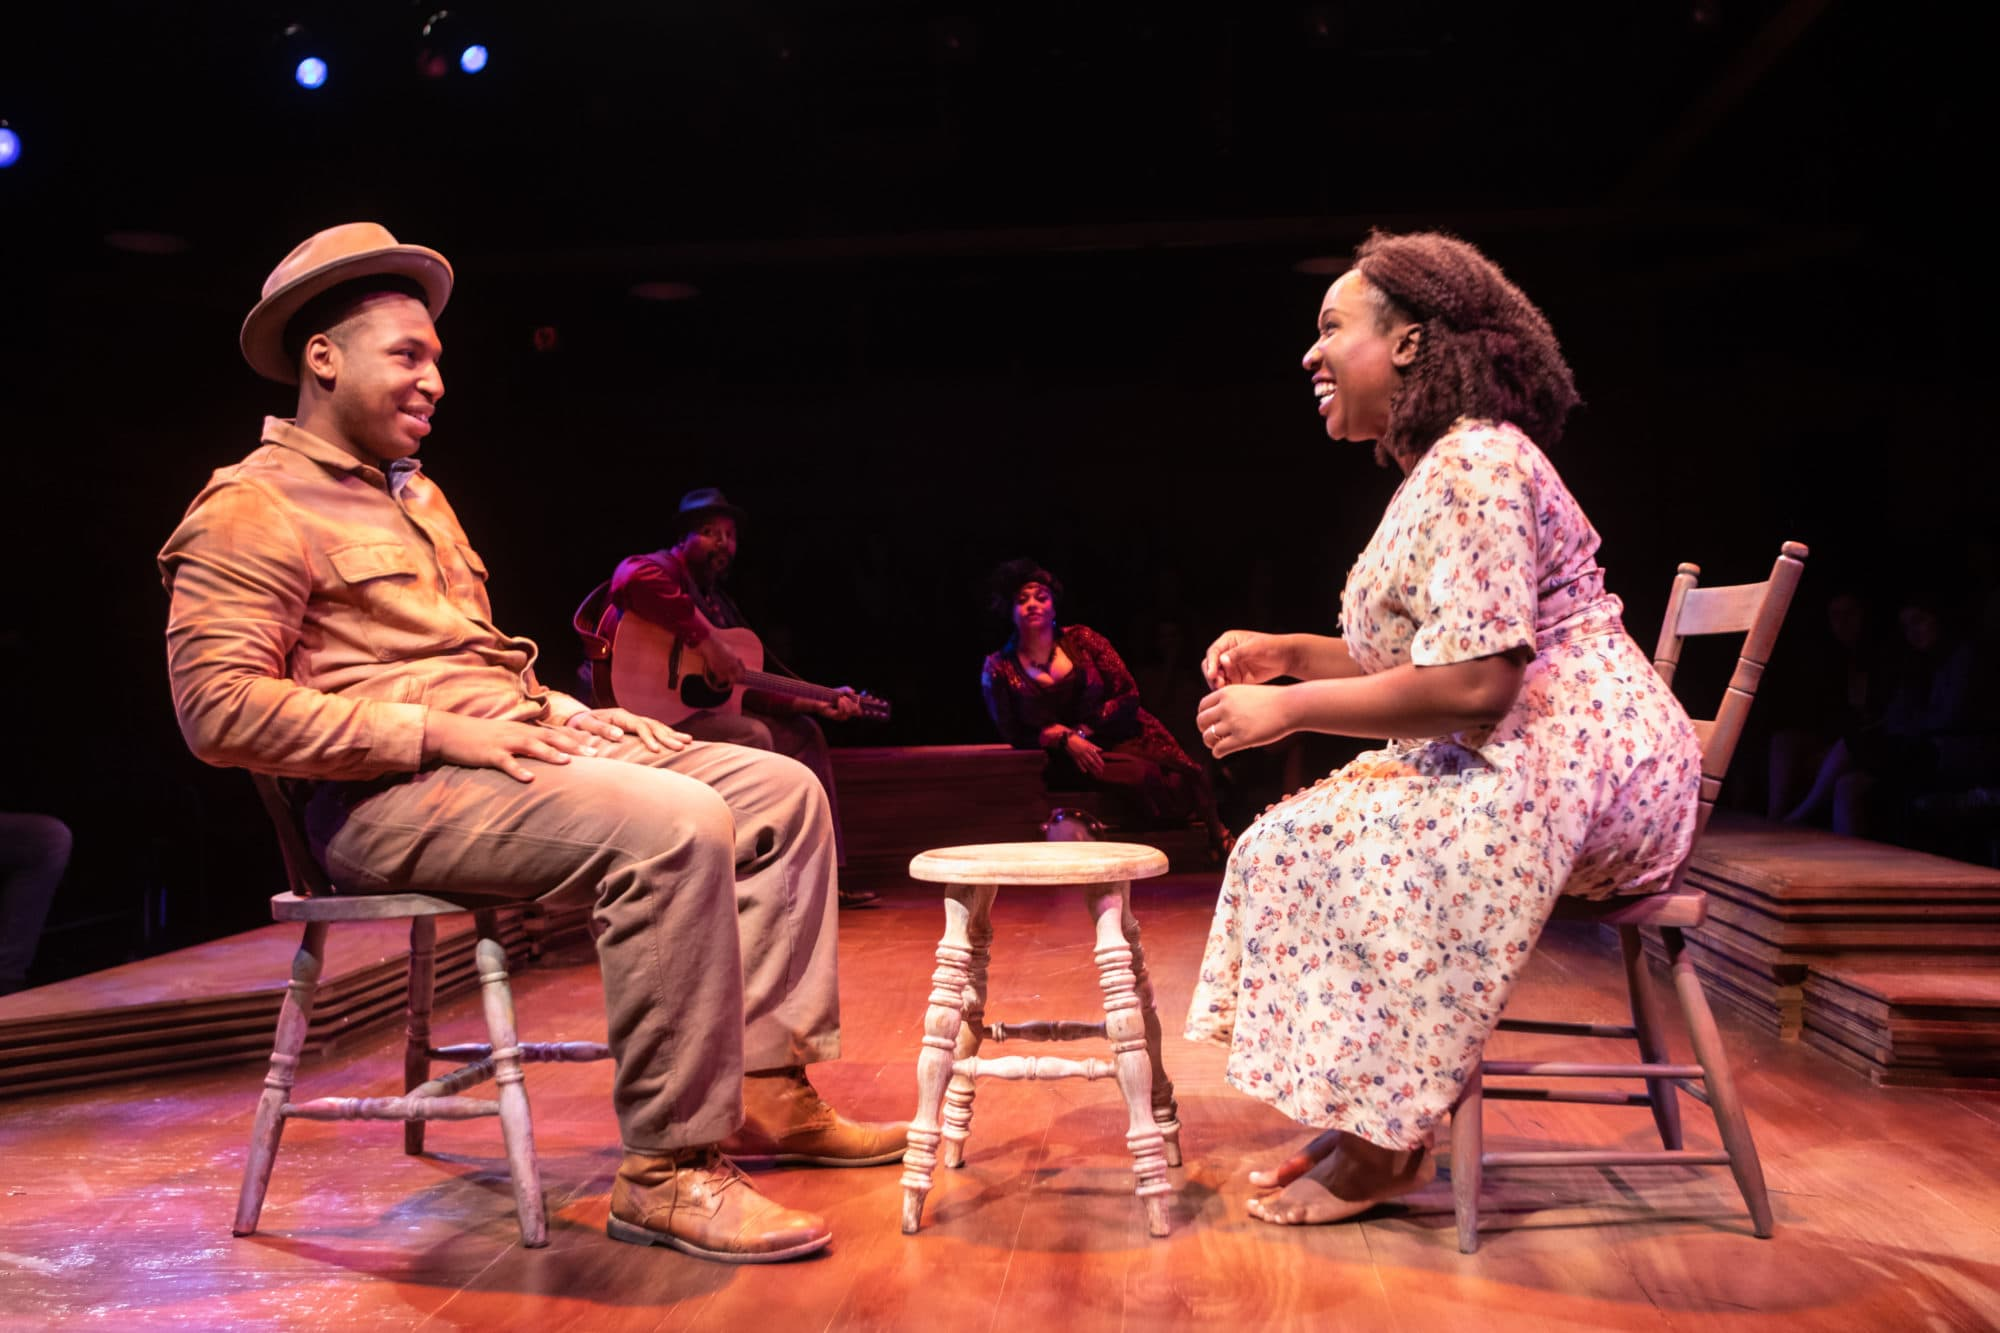 L-R: Drew Drake (Folk Man 3), Jonathan Mosley-Perry (Guitar Man), Iyona Blake (Blues Speak Woman) and Ines Nassara (Folk Woman) in 'Spunk' at Signature Theatre. Photo by Christopher Mueller.